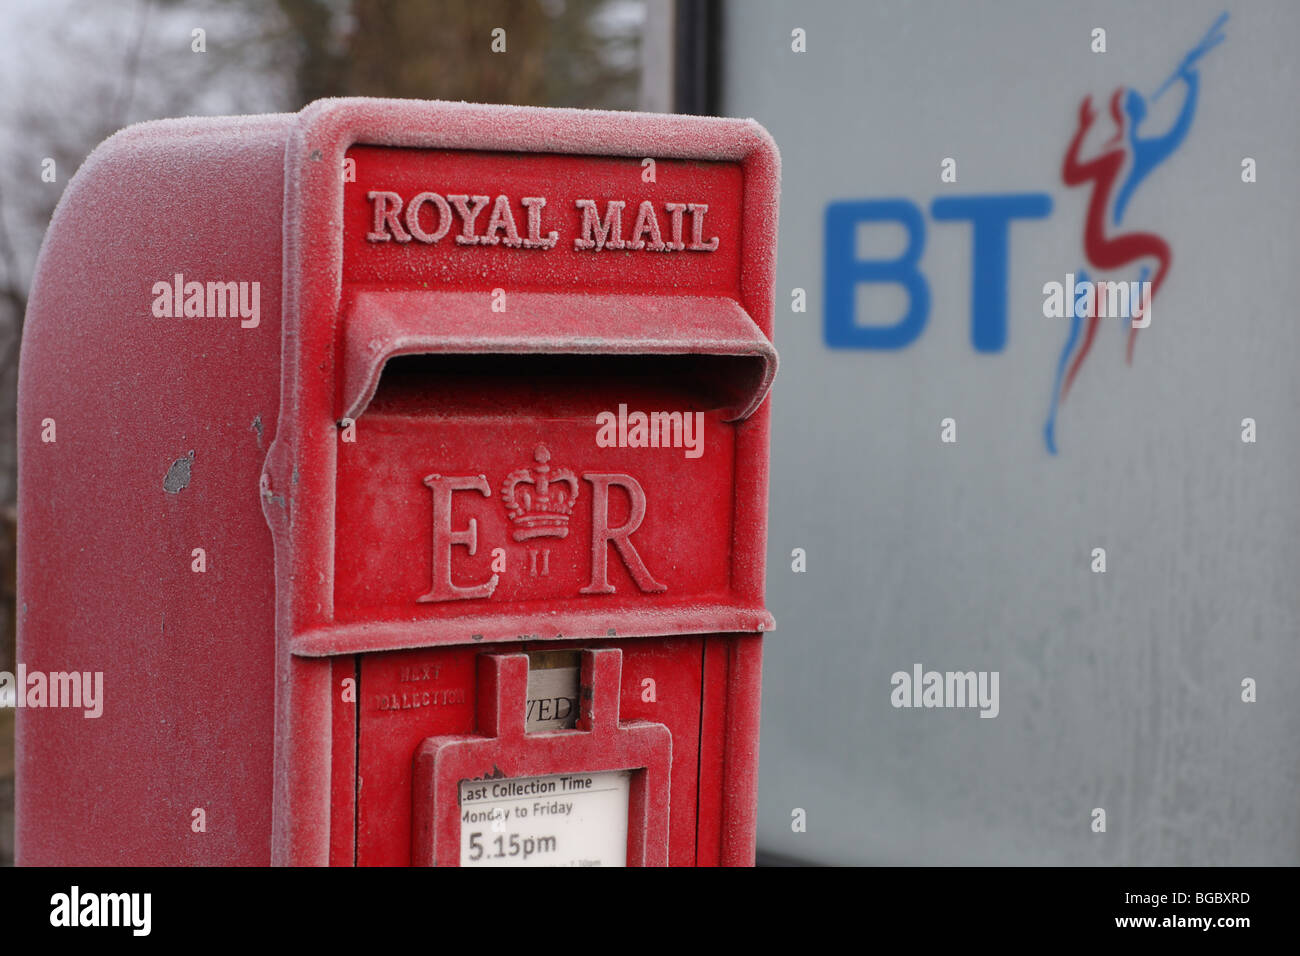 A Royal Mail post box and a BT telephone kiosk in the UK - Stock Image